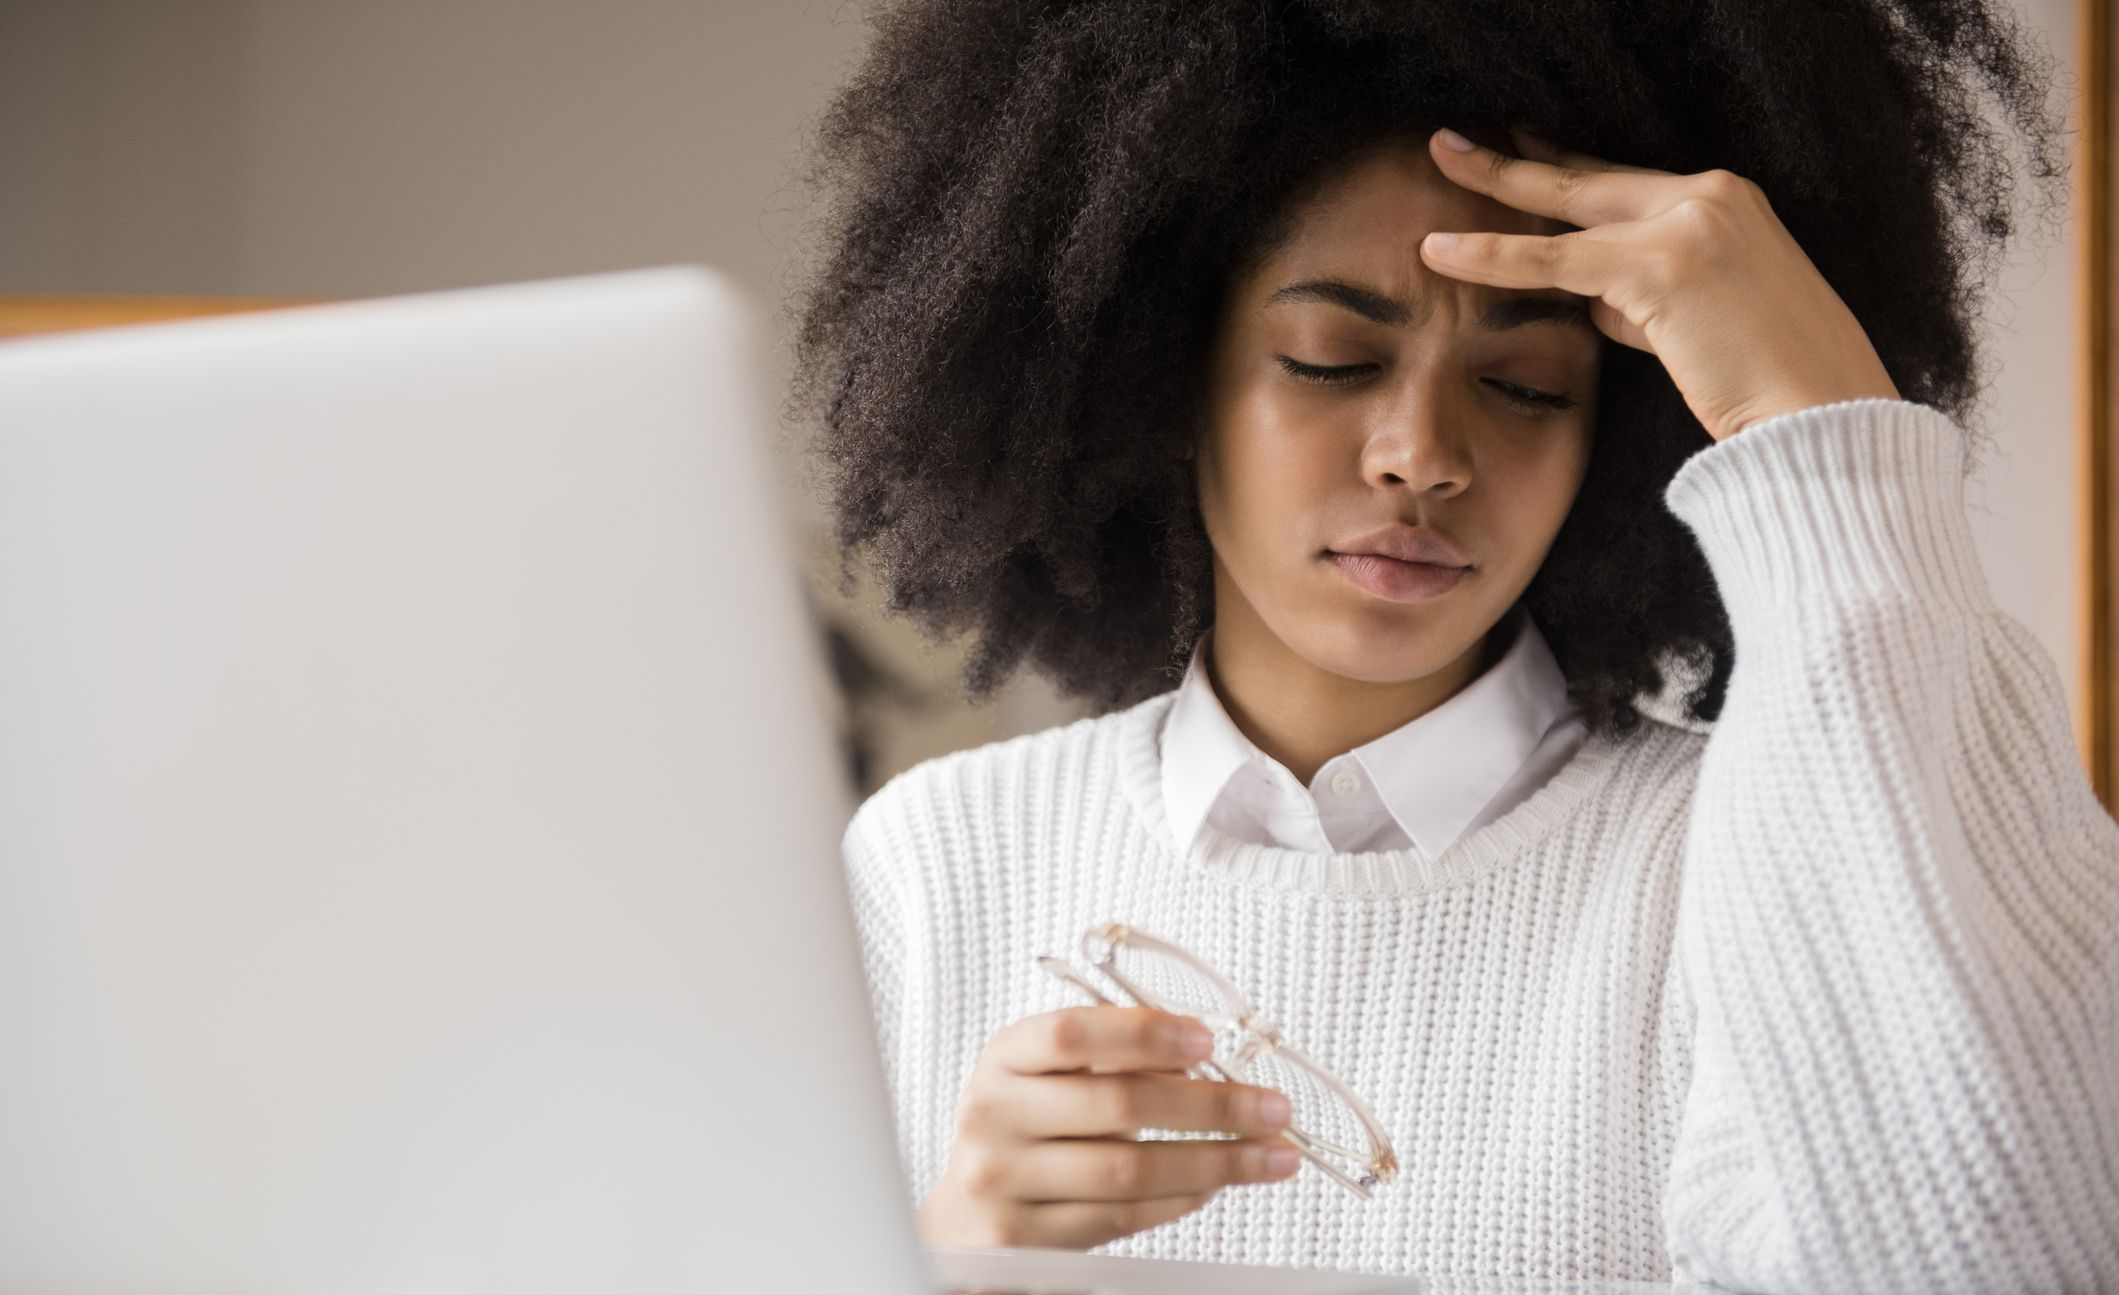 Stress hormones: what are they and what do they do?